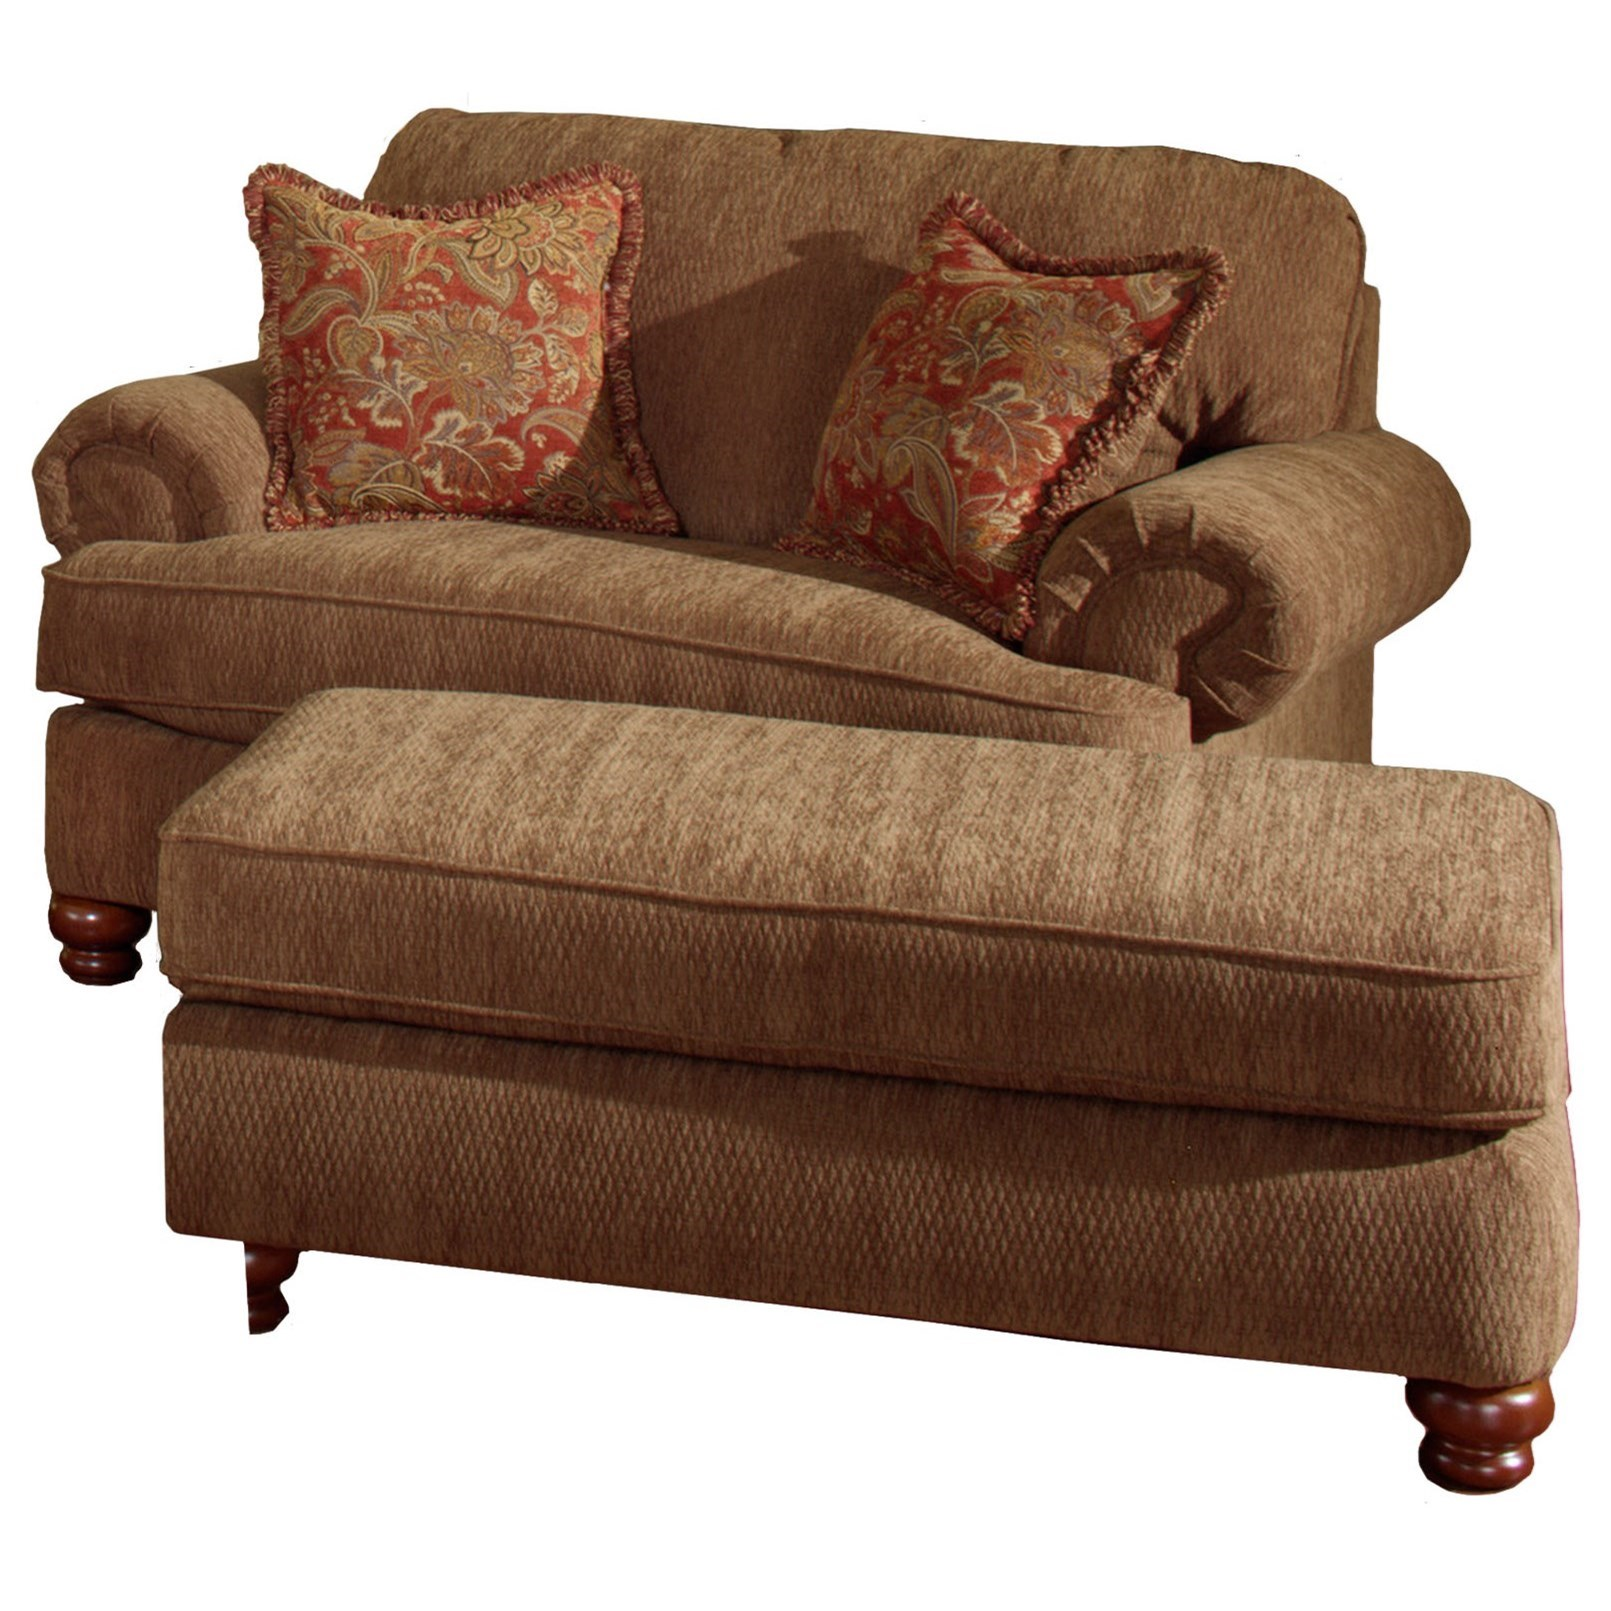 Chair and a half ottoman by jackson furniture wolf and for Chair with ottoman